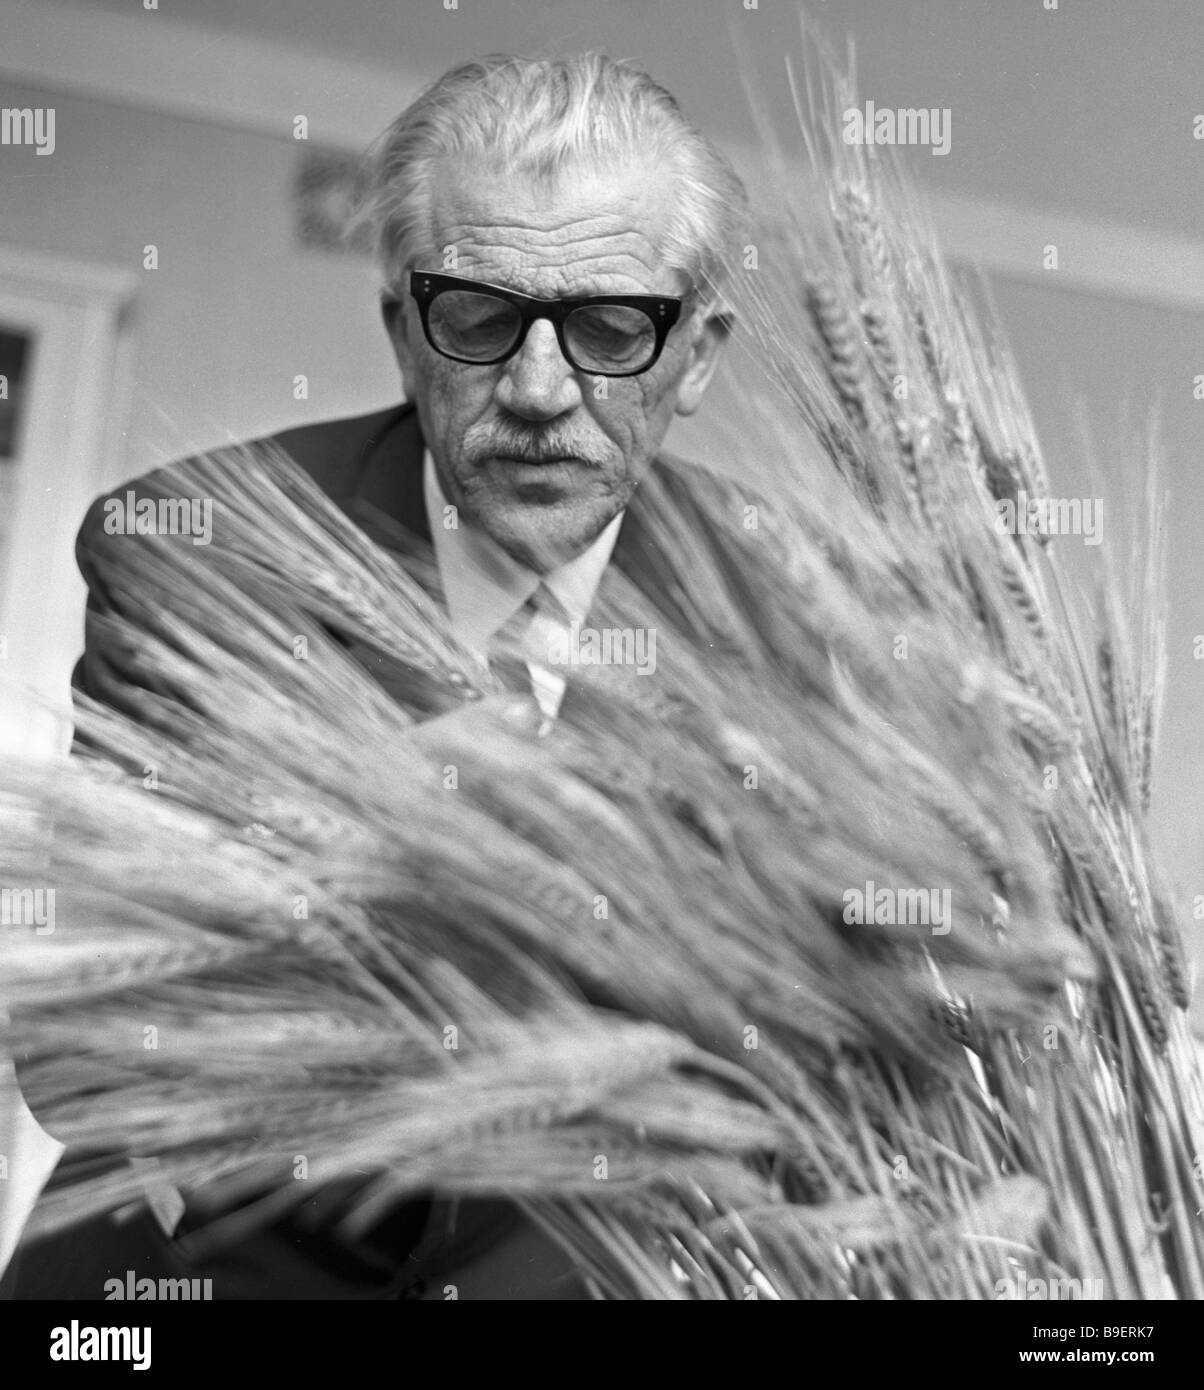 Prokofy Garkavy corresponding member of the Agricultural Academy of Sciences viewing the new variety of wheat - Stock Image